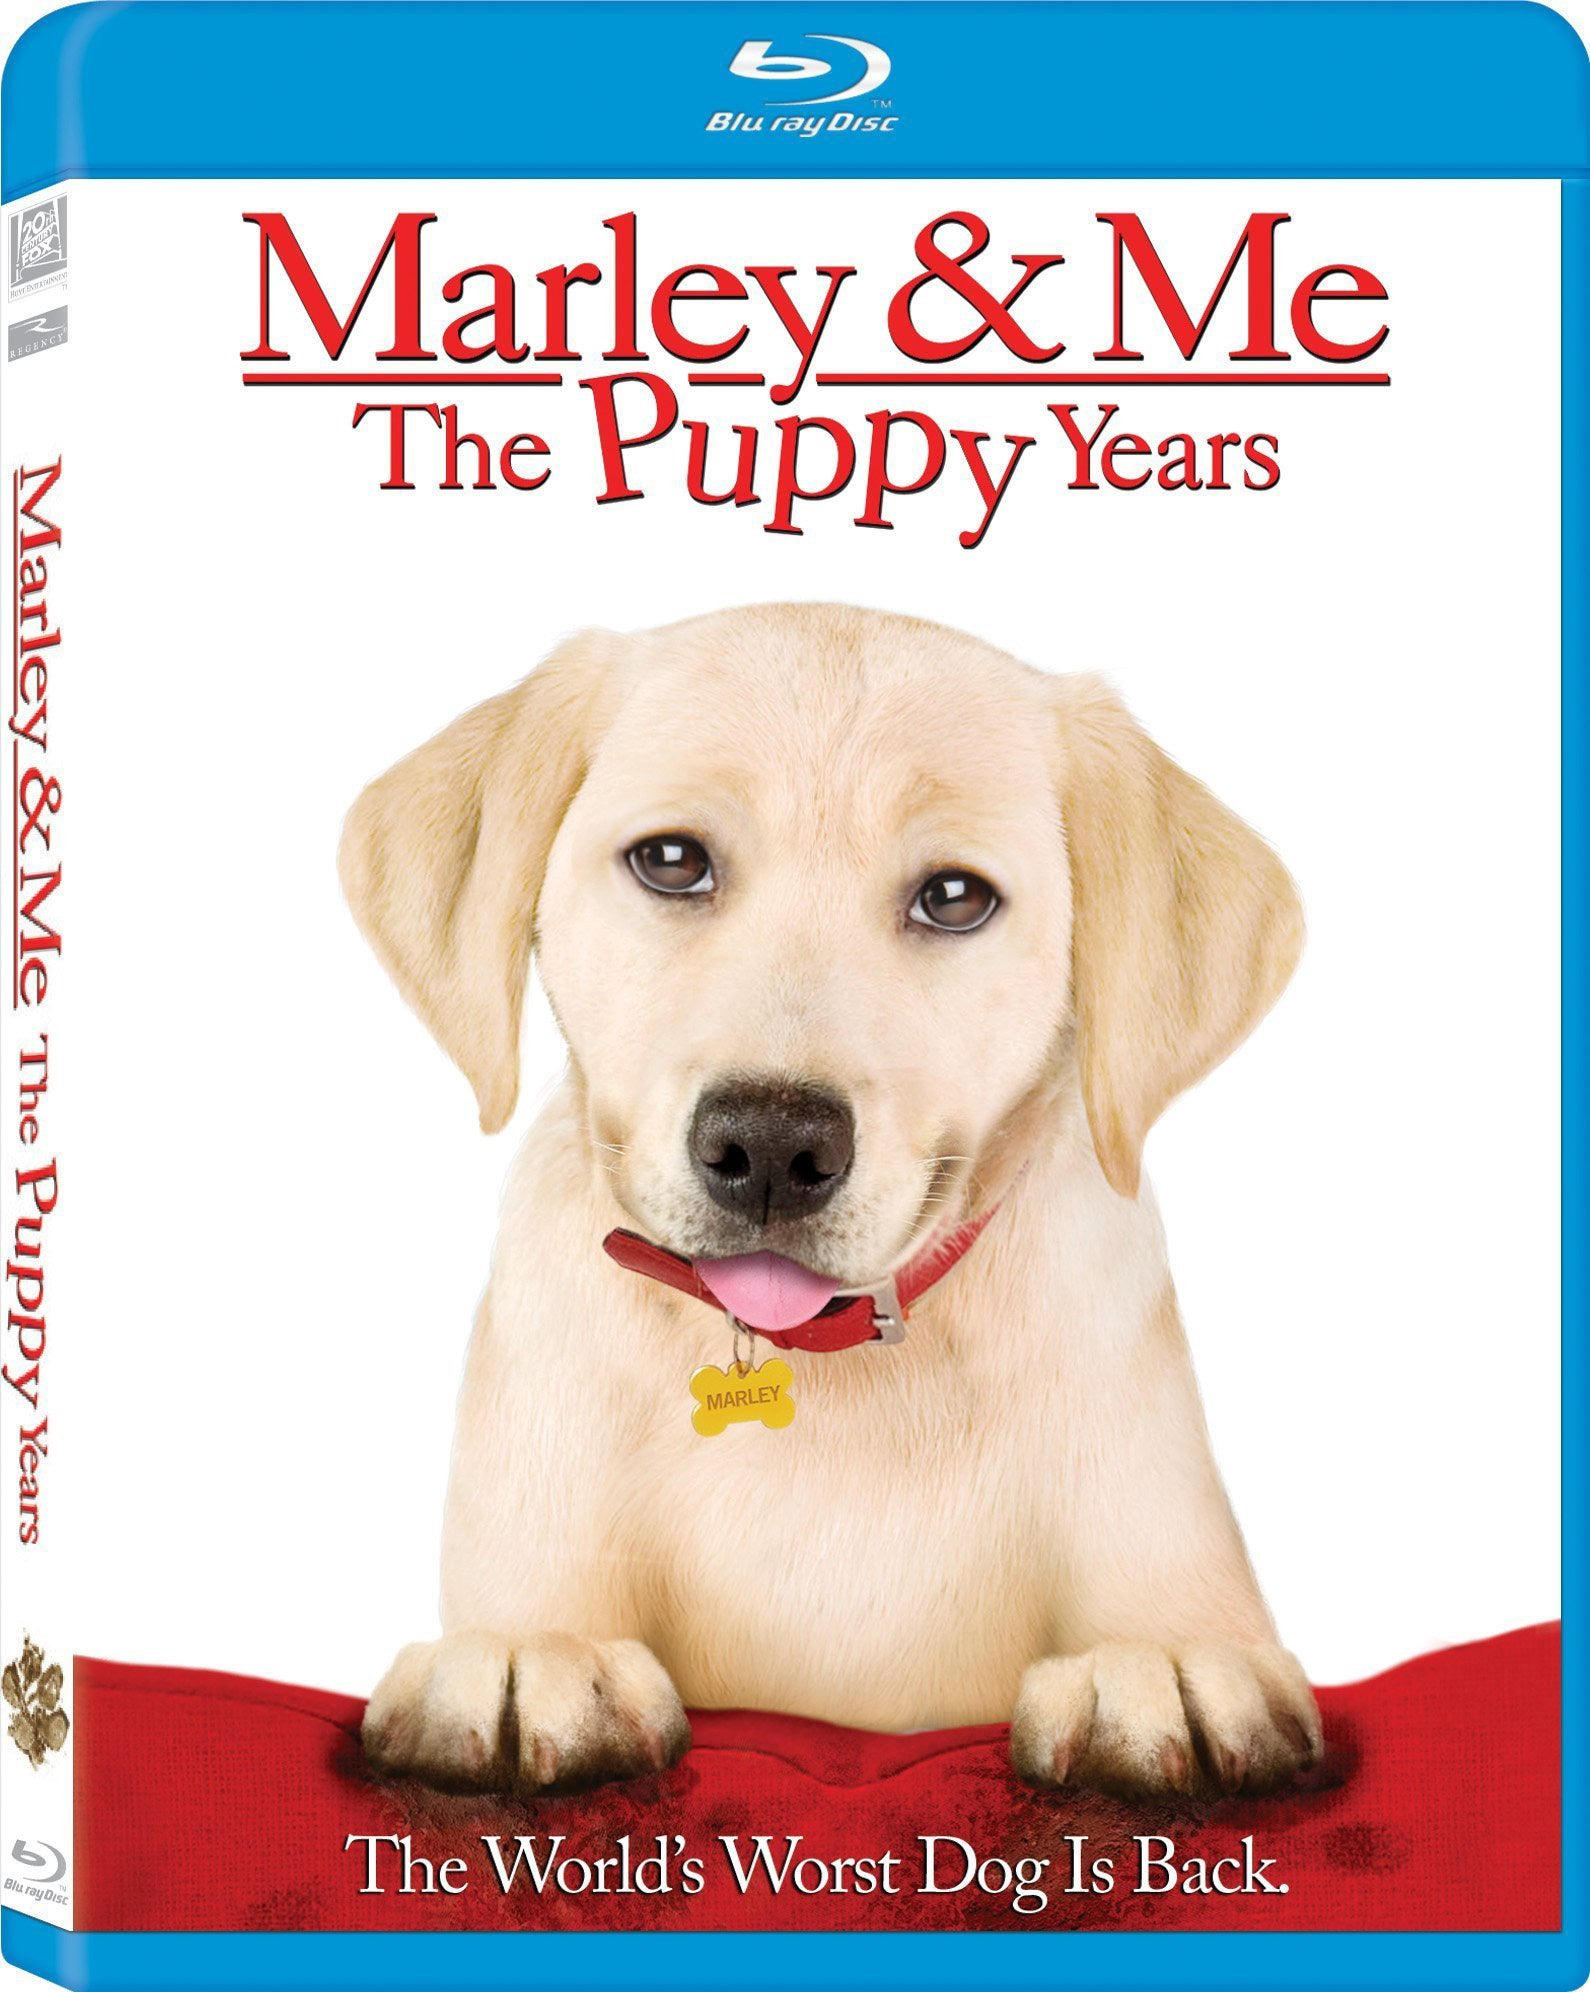 Marley & Me: The Puppy Years (Blu-ray Disc)